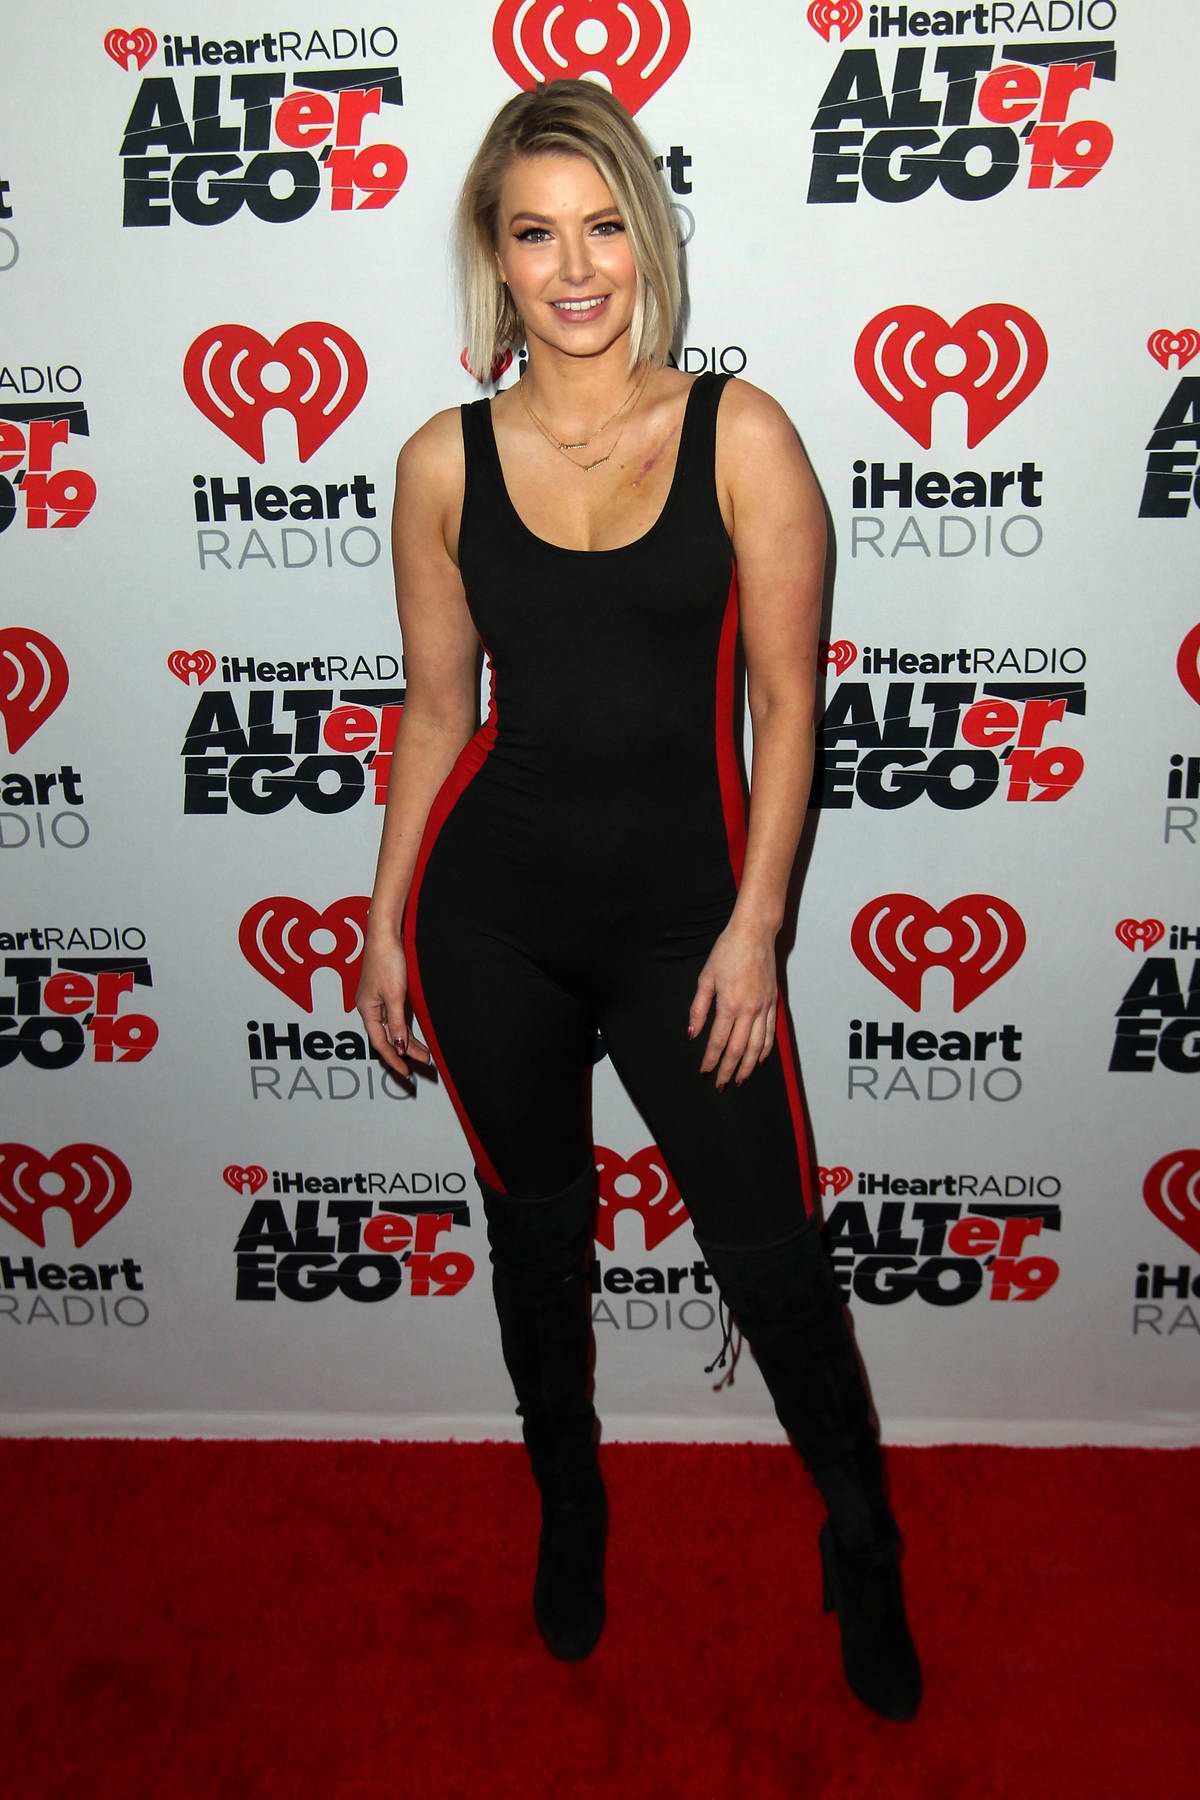 Ariana Madix attends the 2019 iHeartRadio ALTer Ego in Inglewood, California